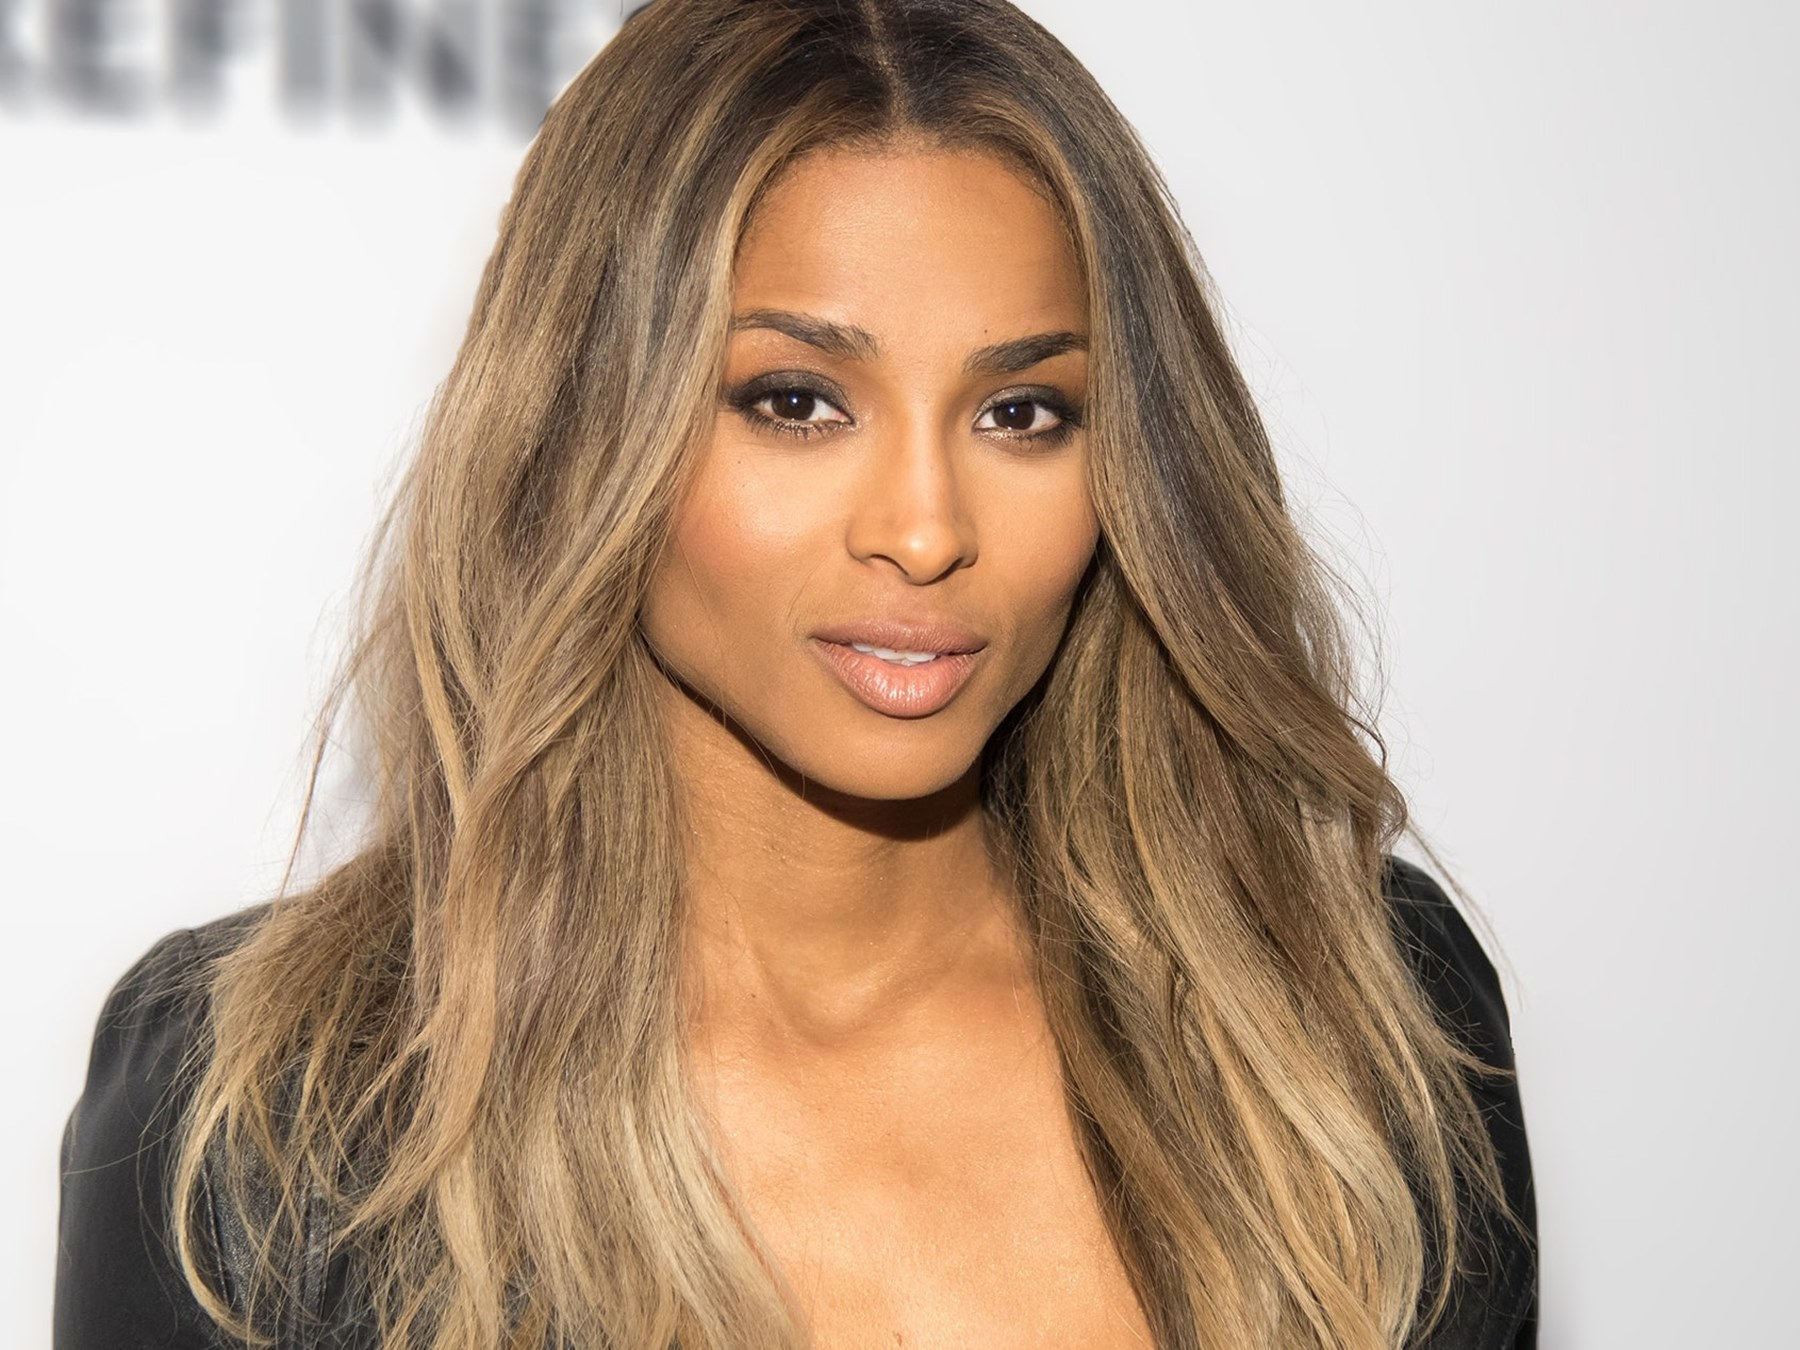 ciara-shares-bathing-suit-photo-and-her-caption-gets-her-in-trouble